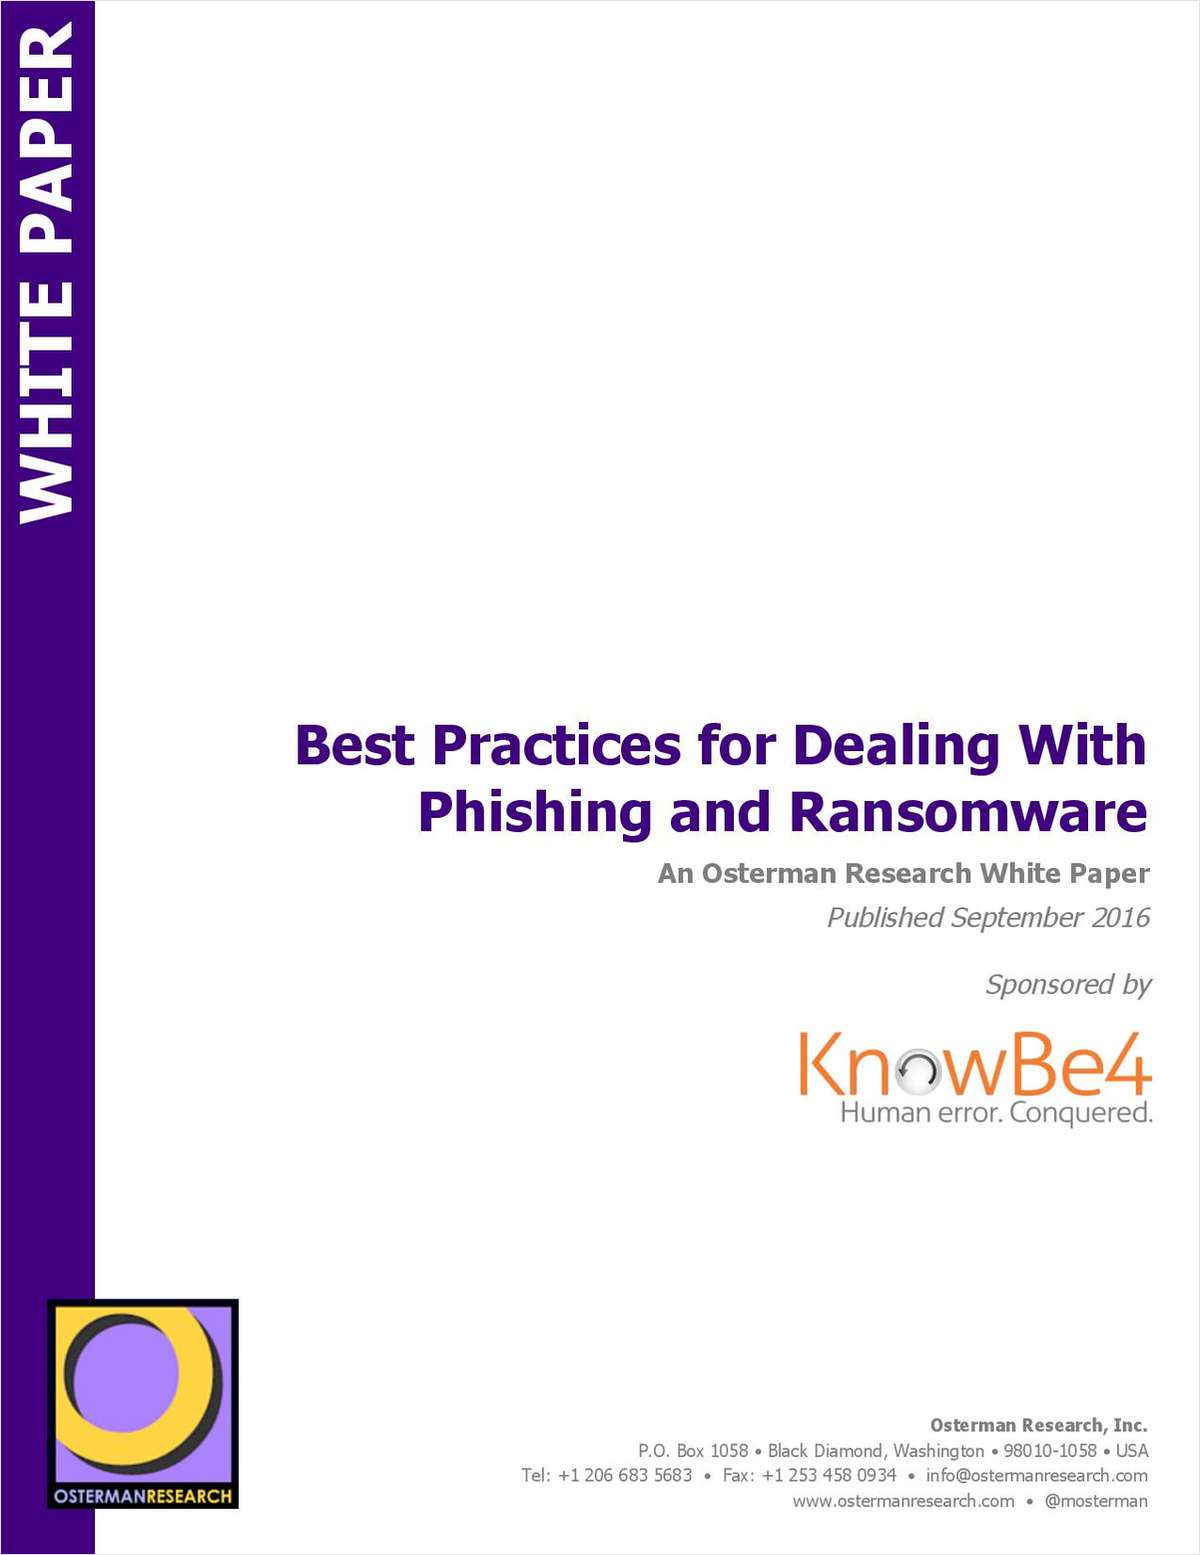 Best practices for dealing with phishing and ransomware free knowbe4 white paper